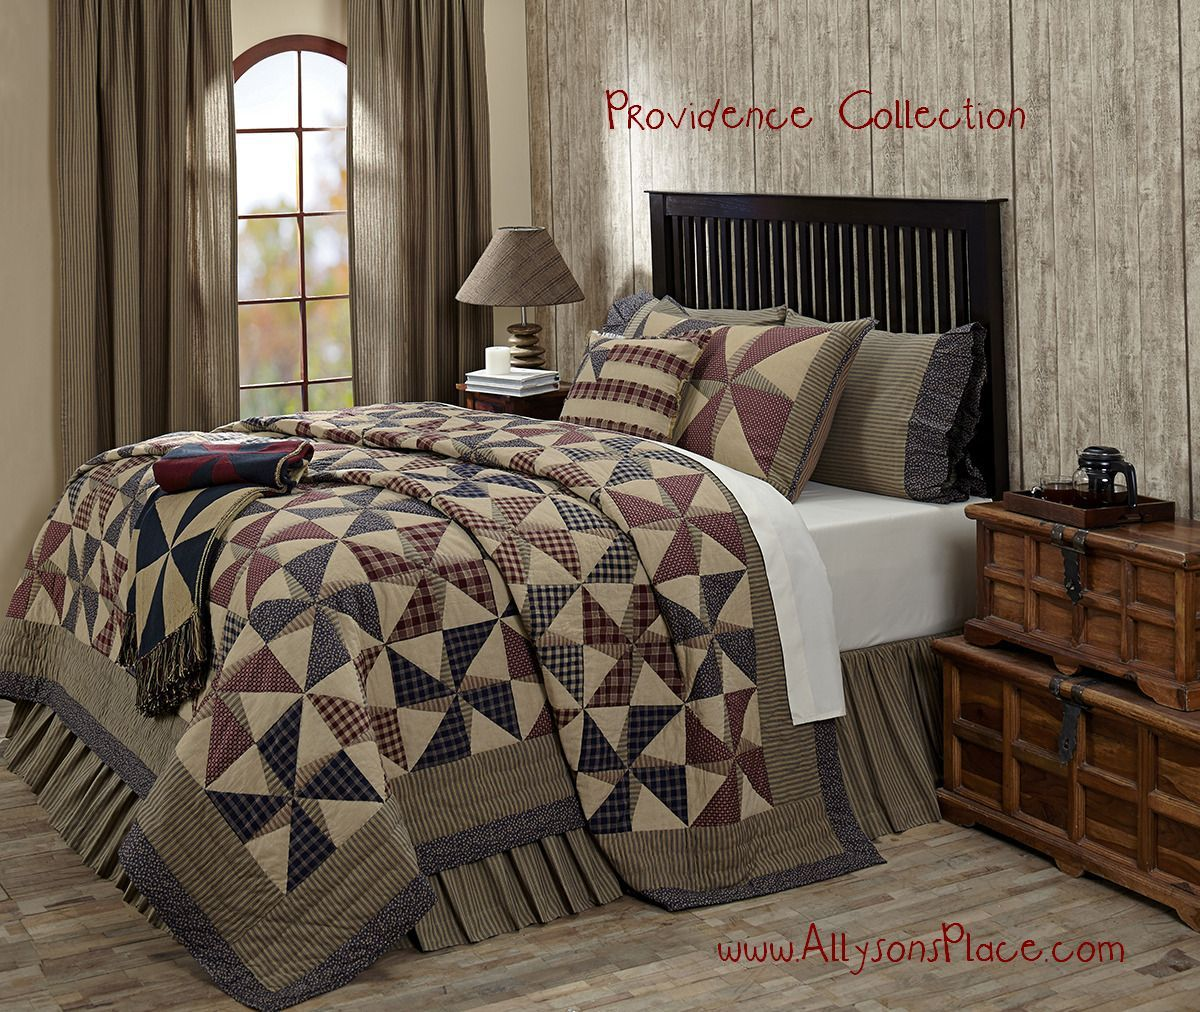 Providence Quilt Collection/ Like us on Facebook! https